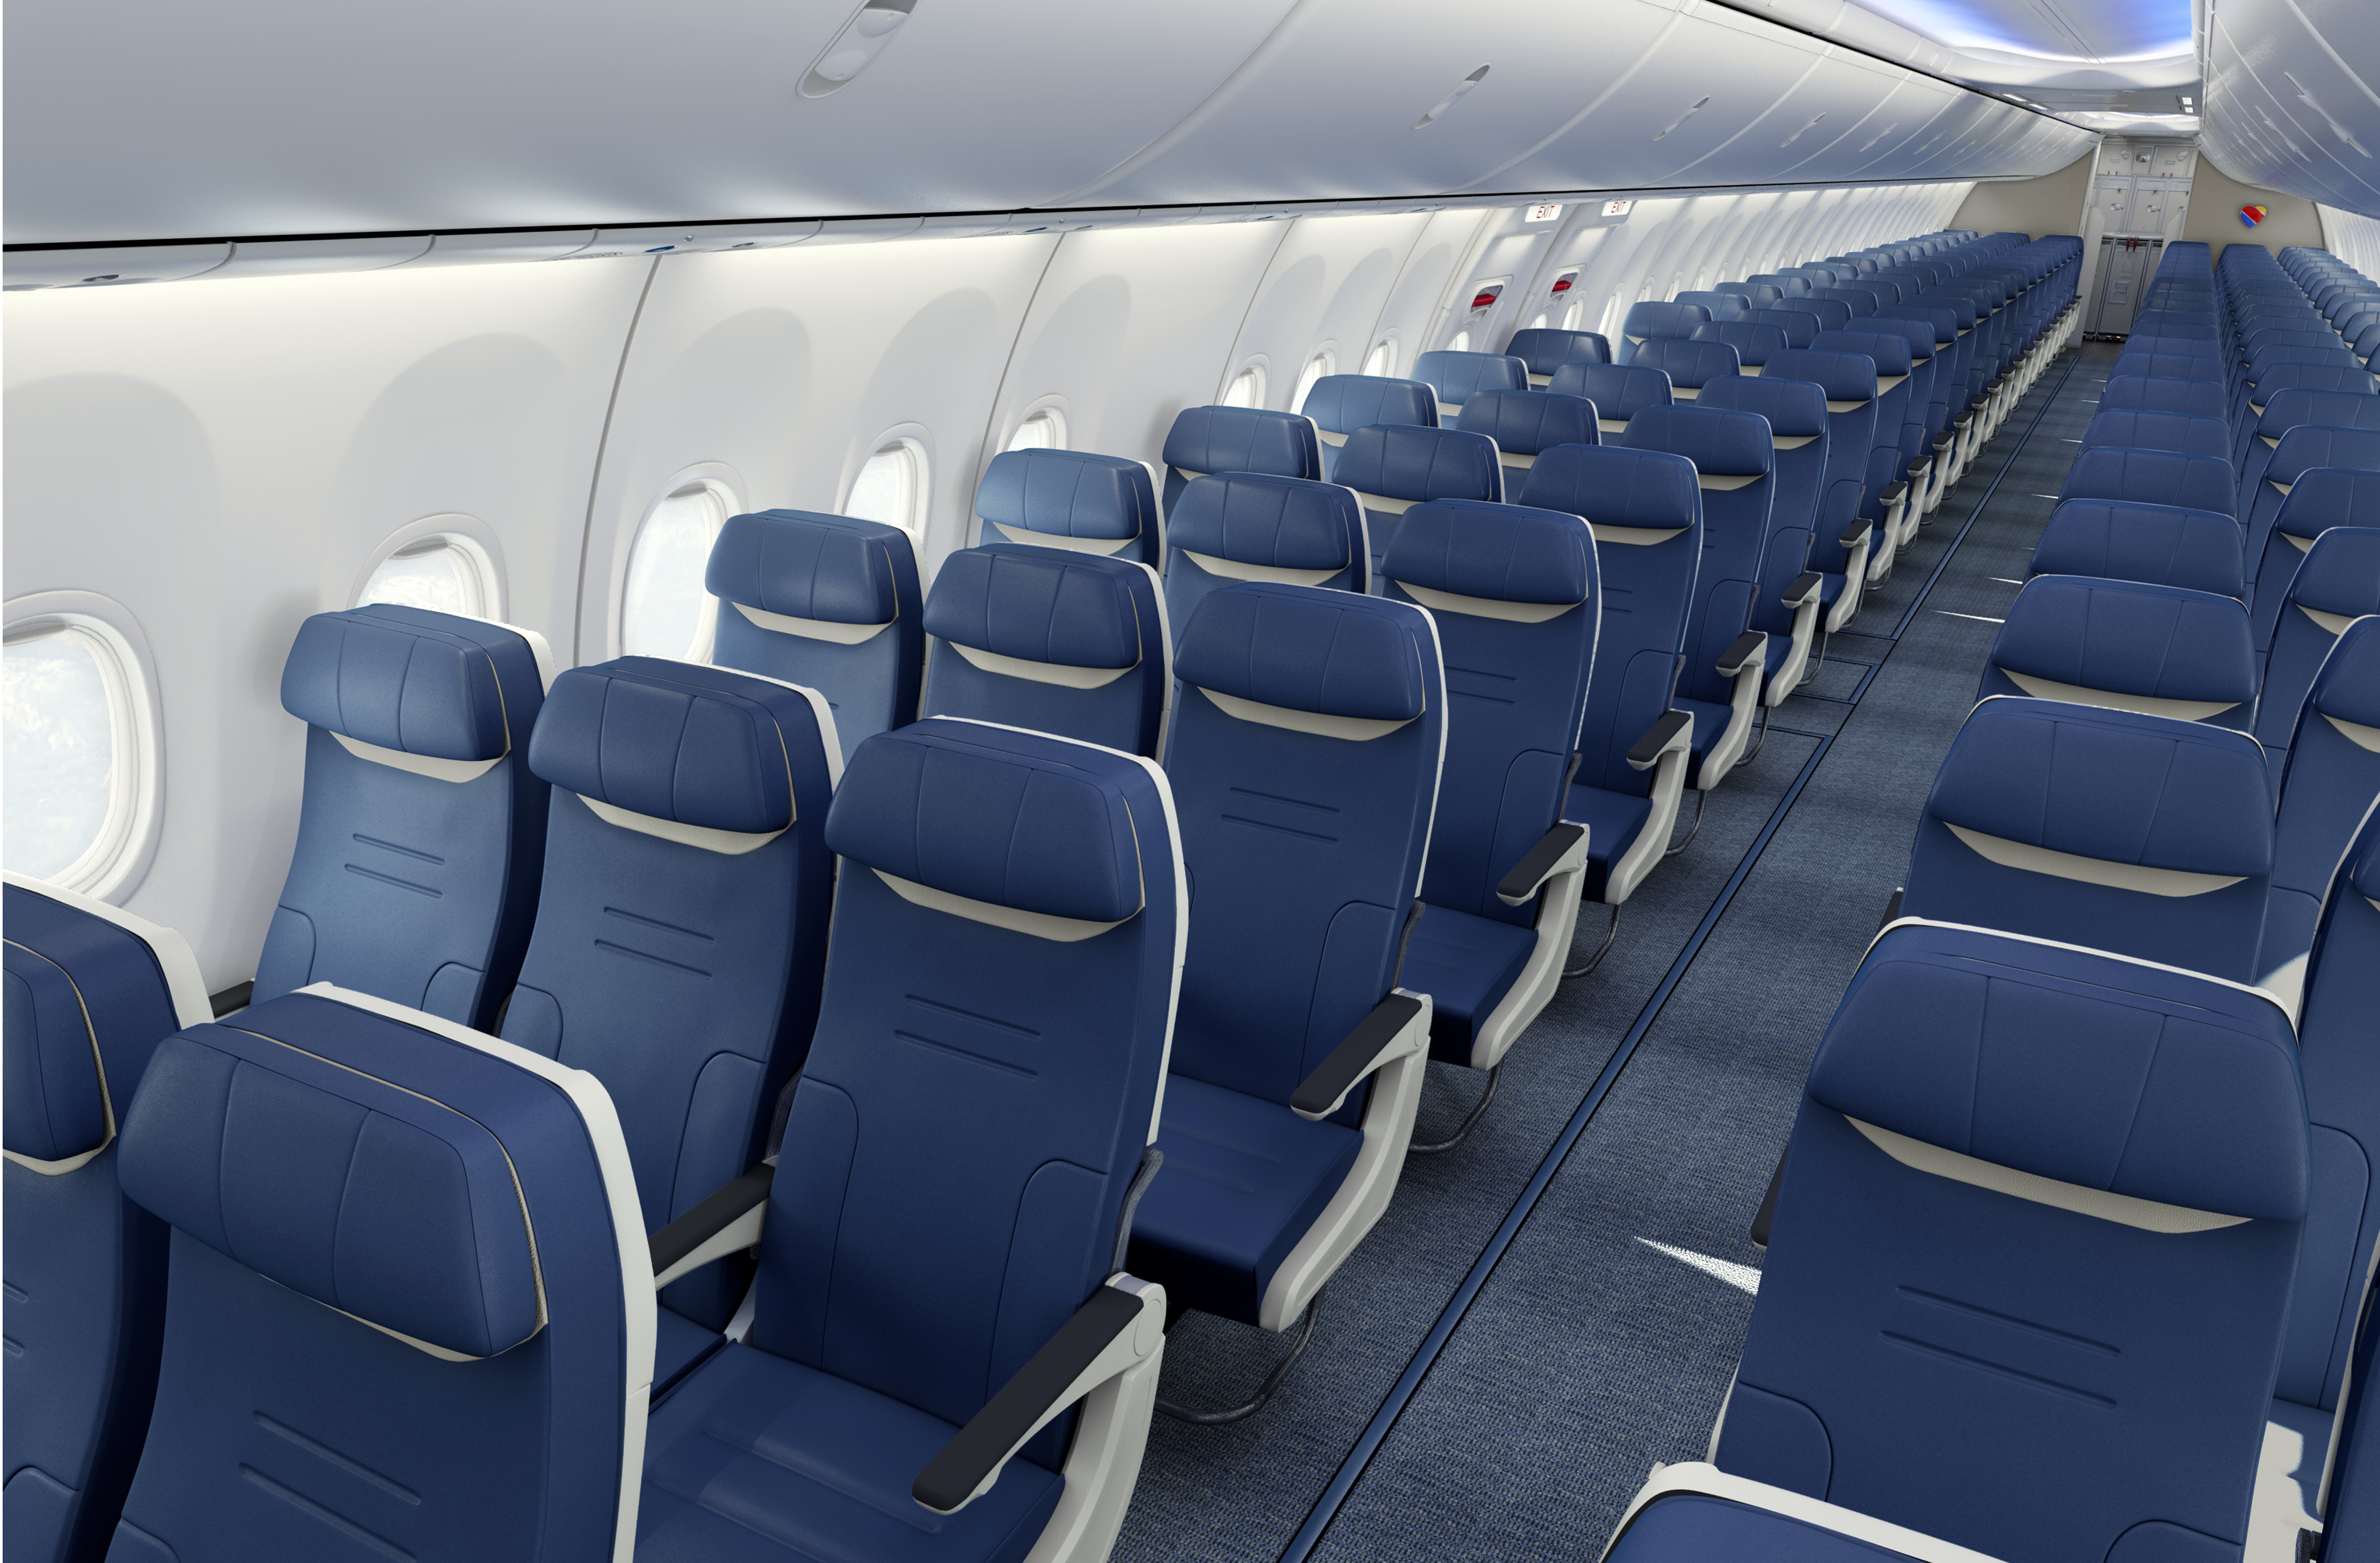 Southwest Airlines' new aircraft seat